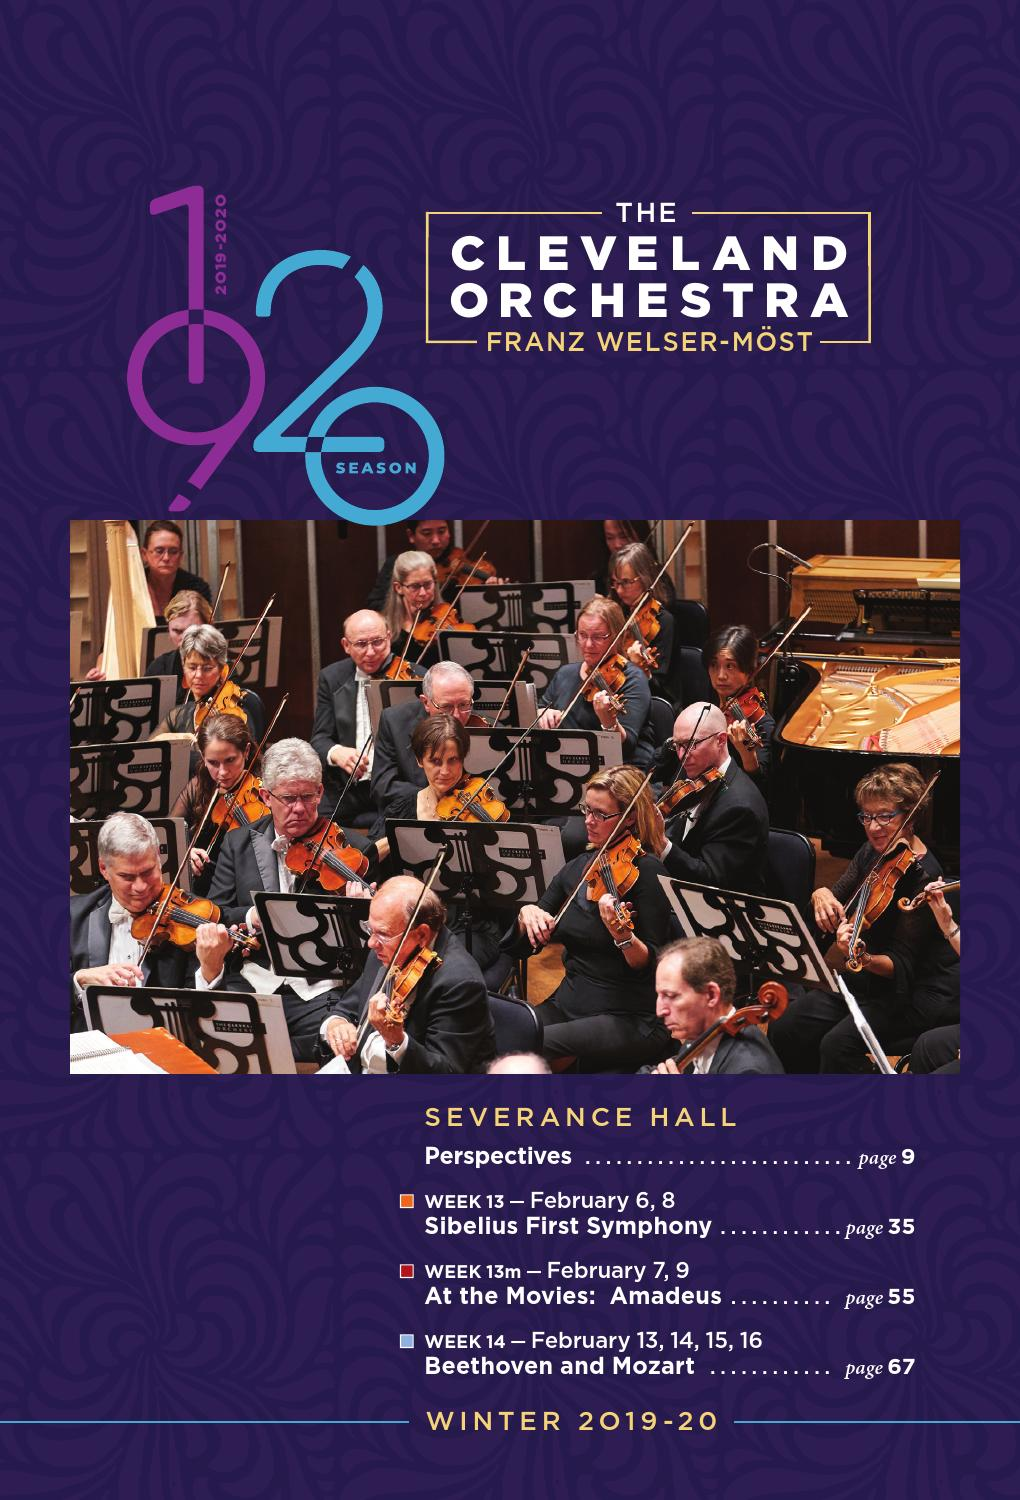 The Cleveland Orchestra February 6 9 13 16 Concerts By Live Publishing Issuu Tvma • comedy, animation • tv series (2012). the cleveland orchestra february 6 9